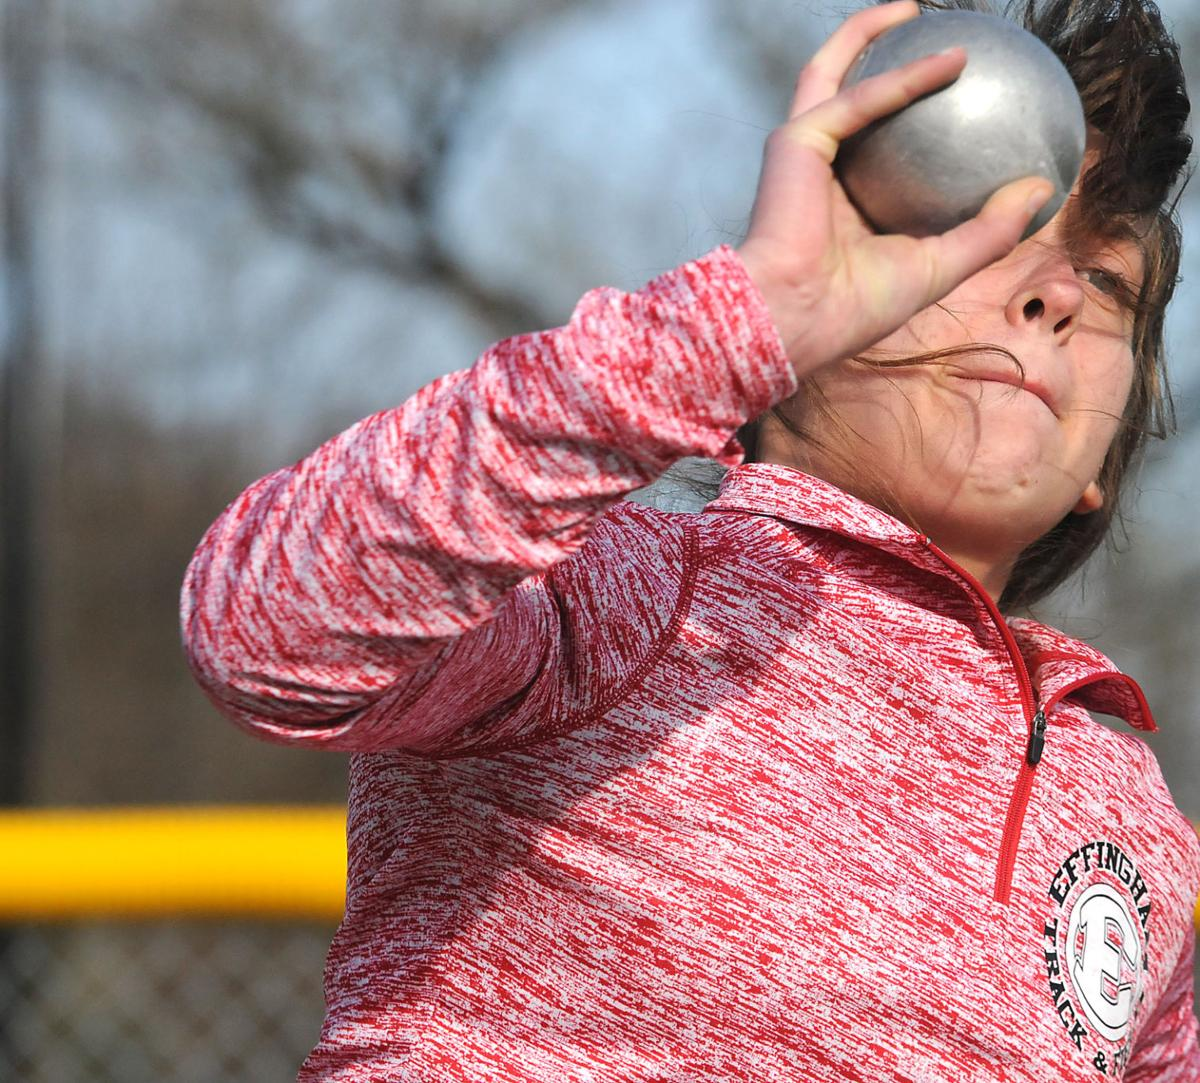 Illinois effingham county teutopolis - Effingham S Alex Denoyer Tosses The Shot Put At A Triangle Meet With St Anthony And Teutopolis At St Anthony Tuesday